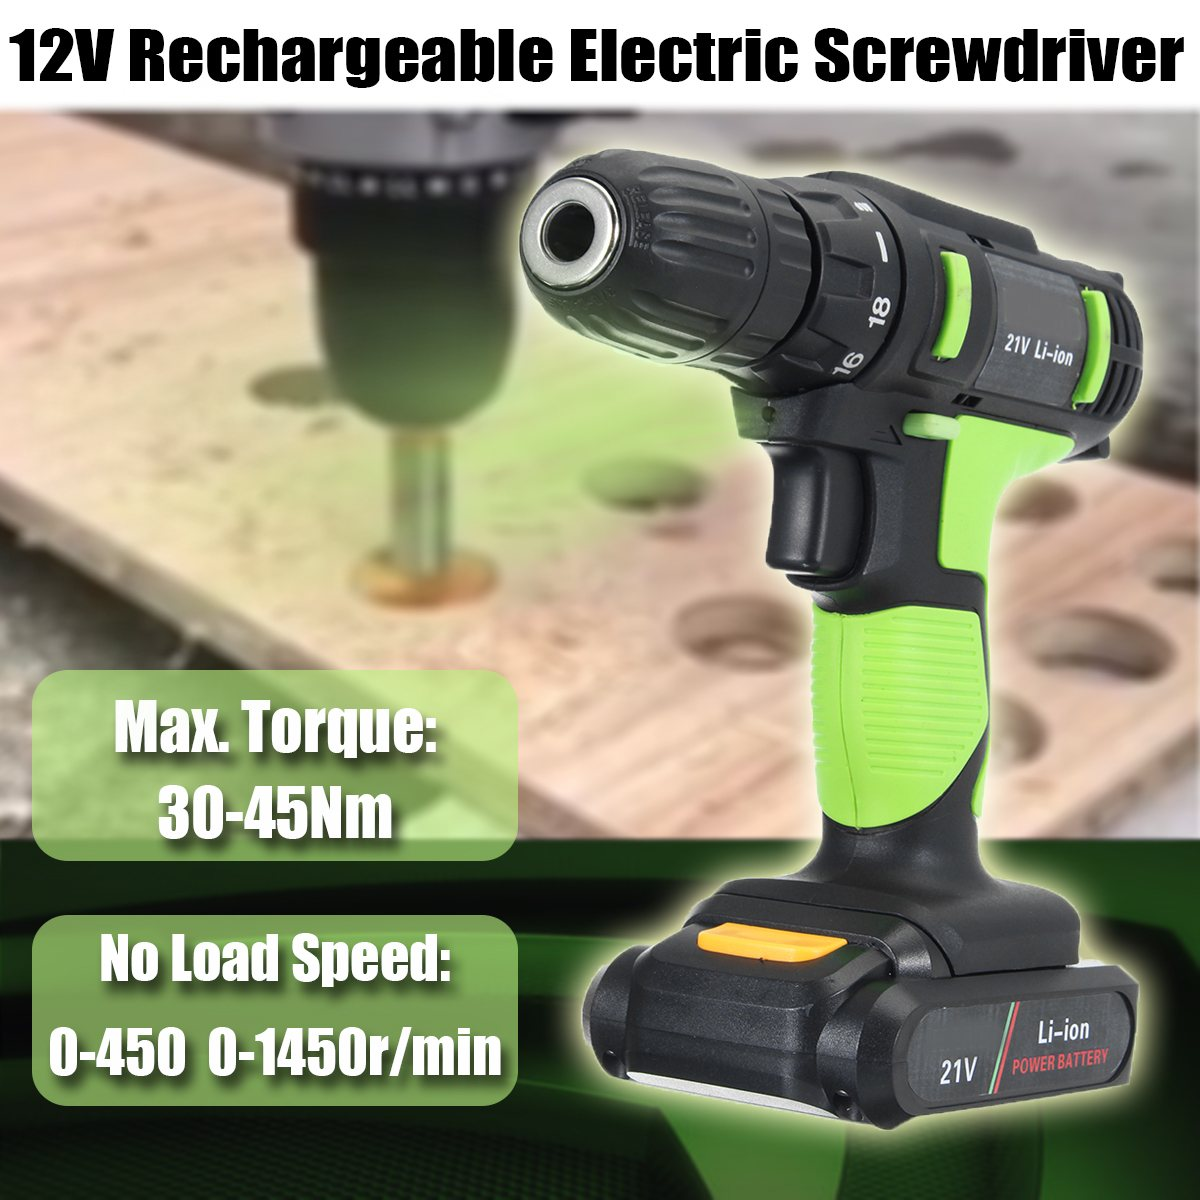 цена на 21V Electric Screwdriver Battery Screwdriver Wireless Drill Power Tools Professional Electric Torque Screwdriver + 2 Batteries